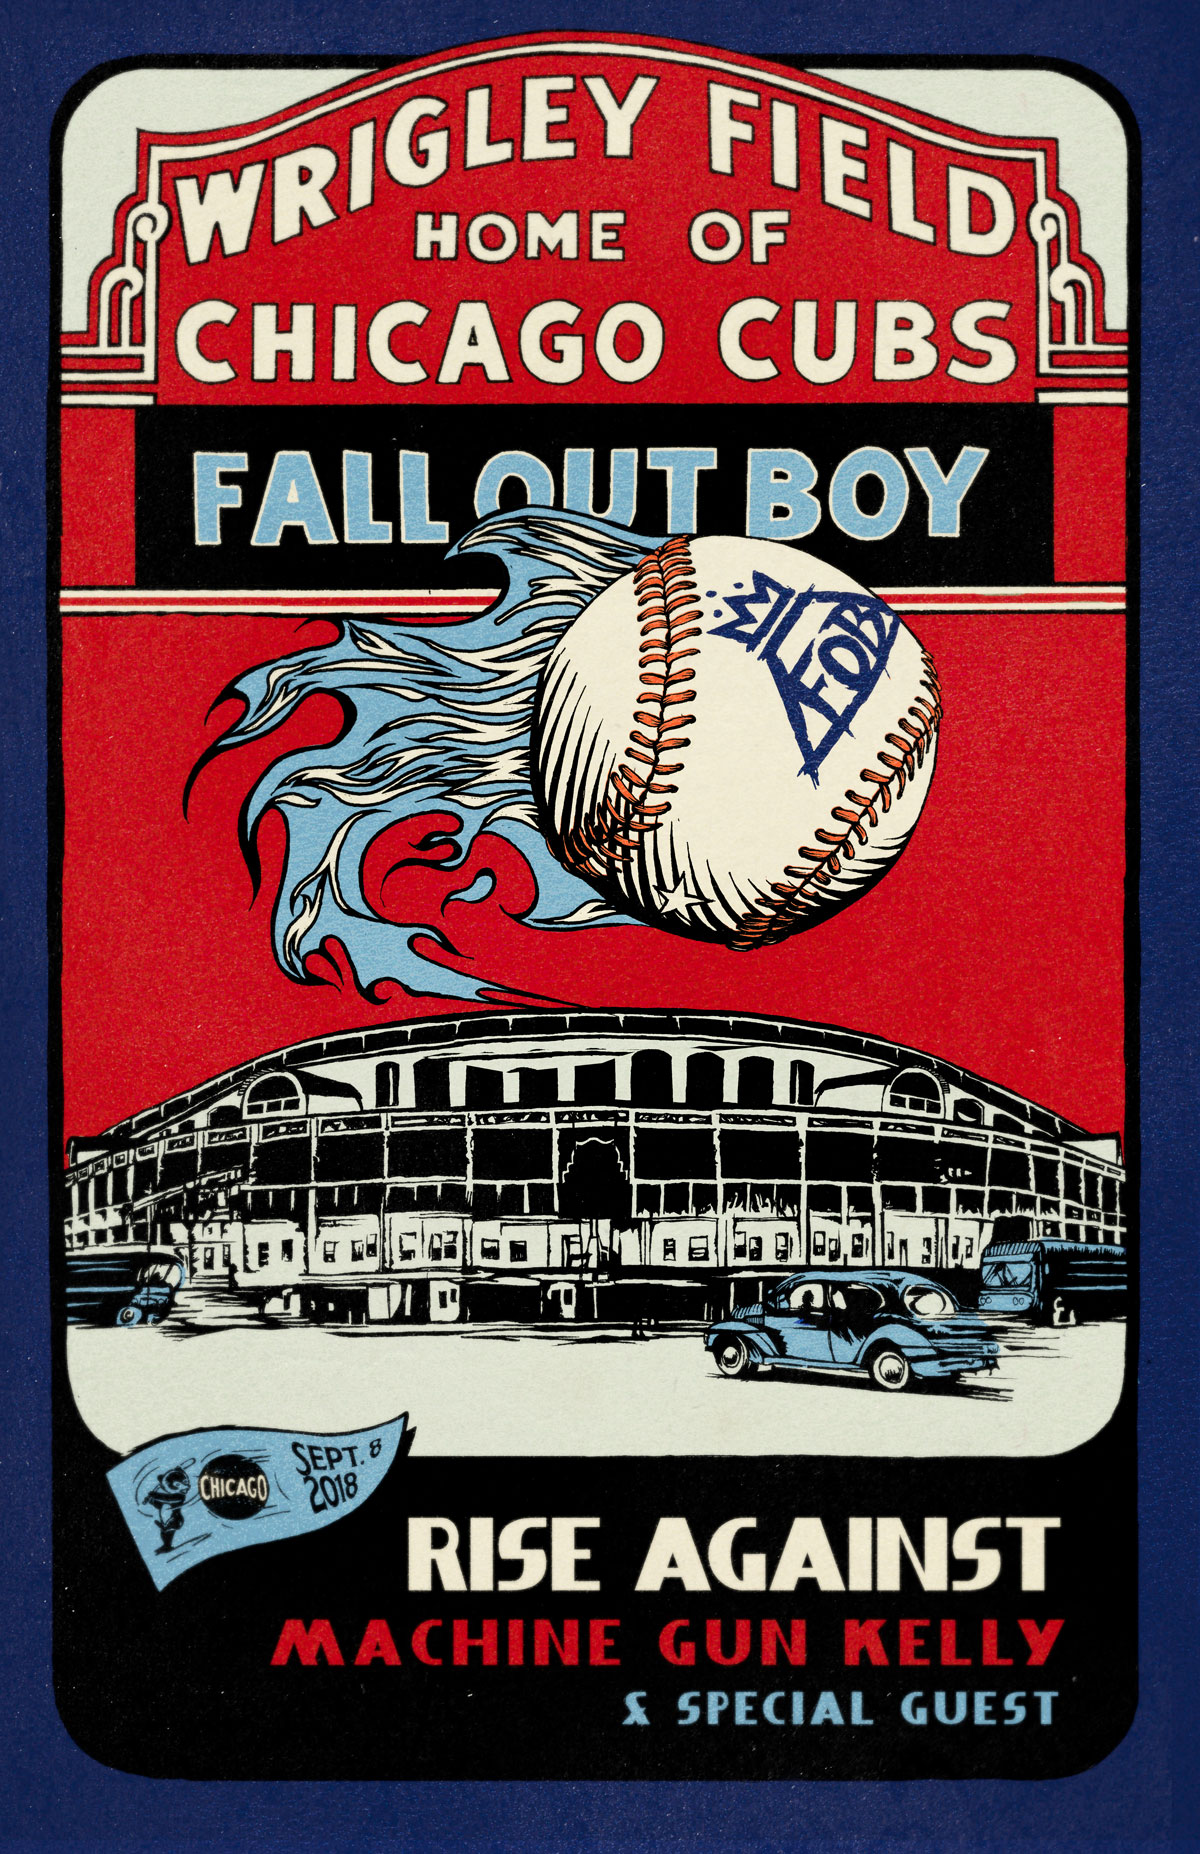 Poster for Fall Out Boy's Show at iconic Wrigley Field in Chicago. -